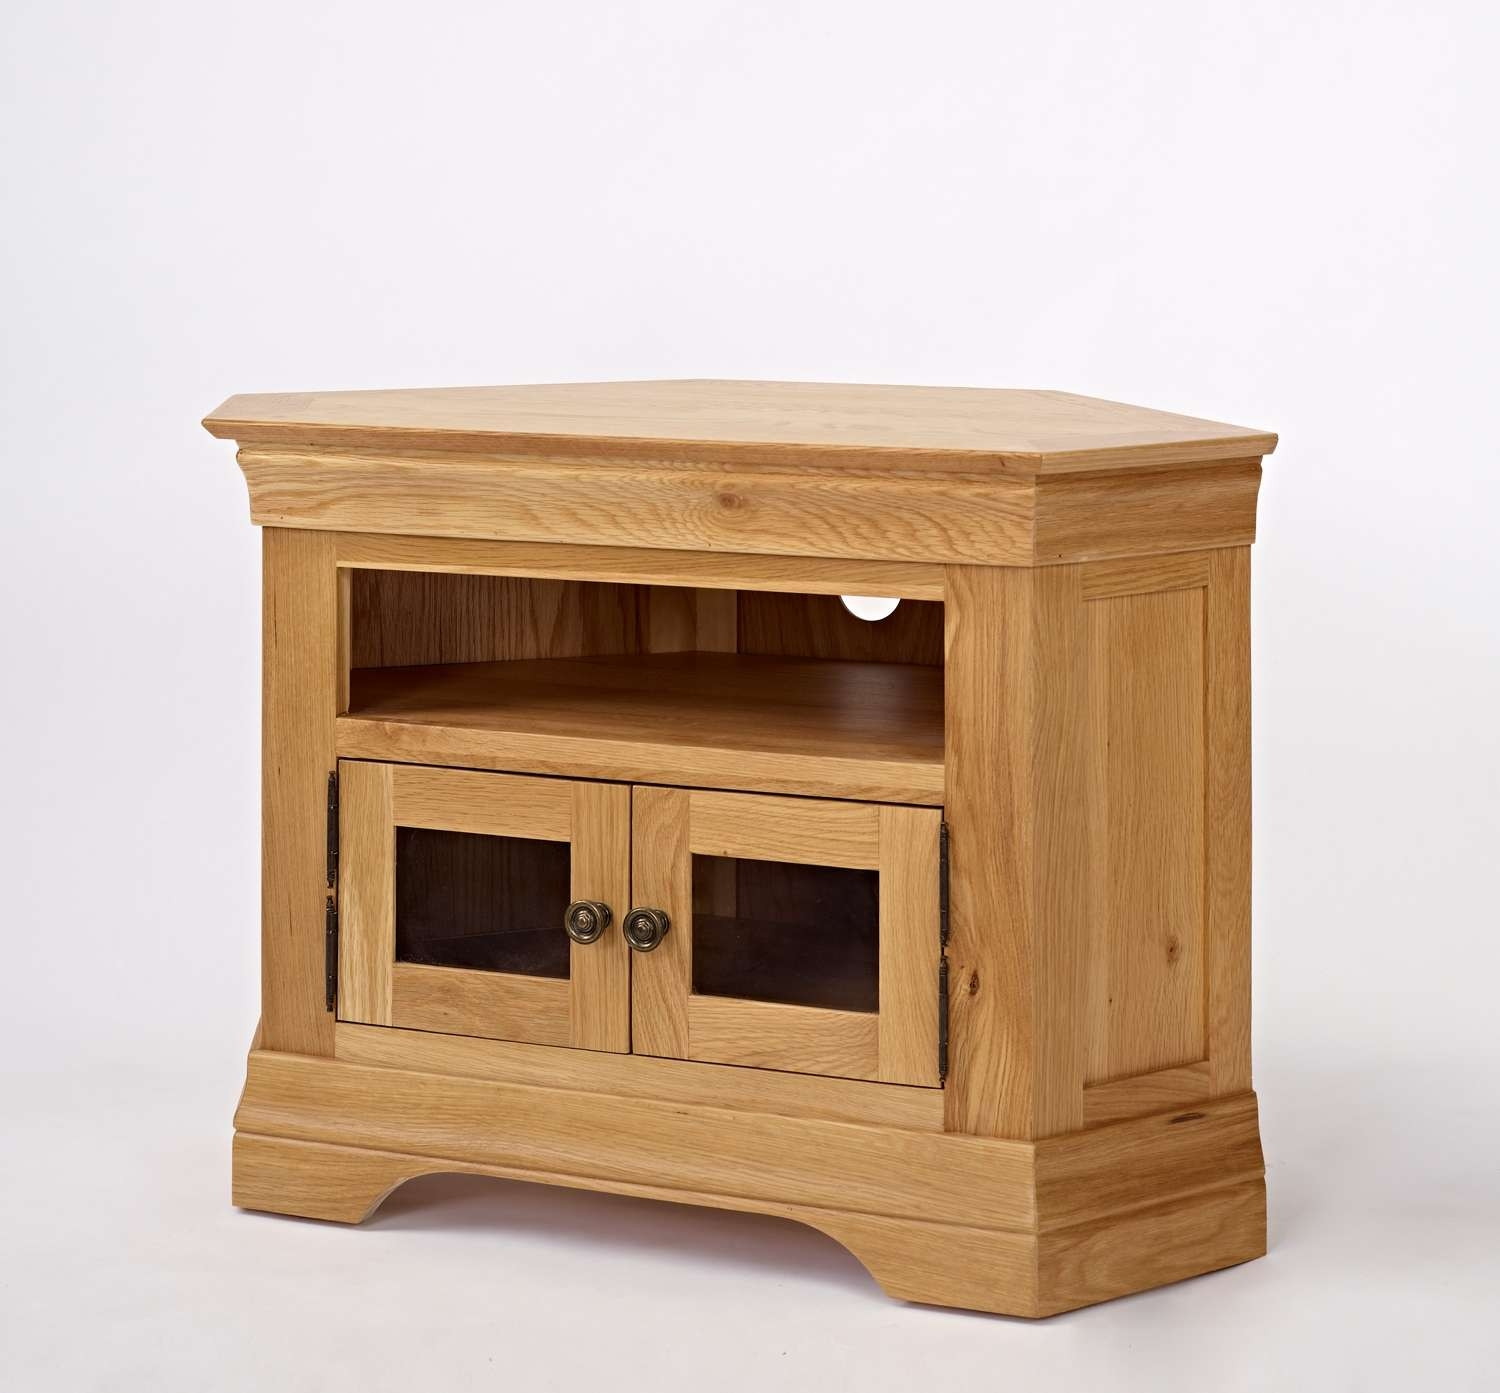 Furniture Oak Wood Media Cabinet With Open Shelf And Storage Solid Pertaining To Small Oak Corner Tv Stands (View 4 of 15)